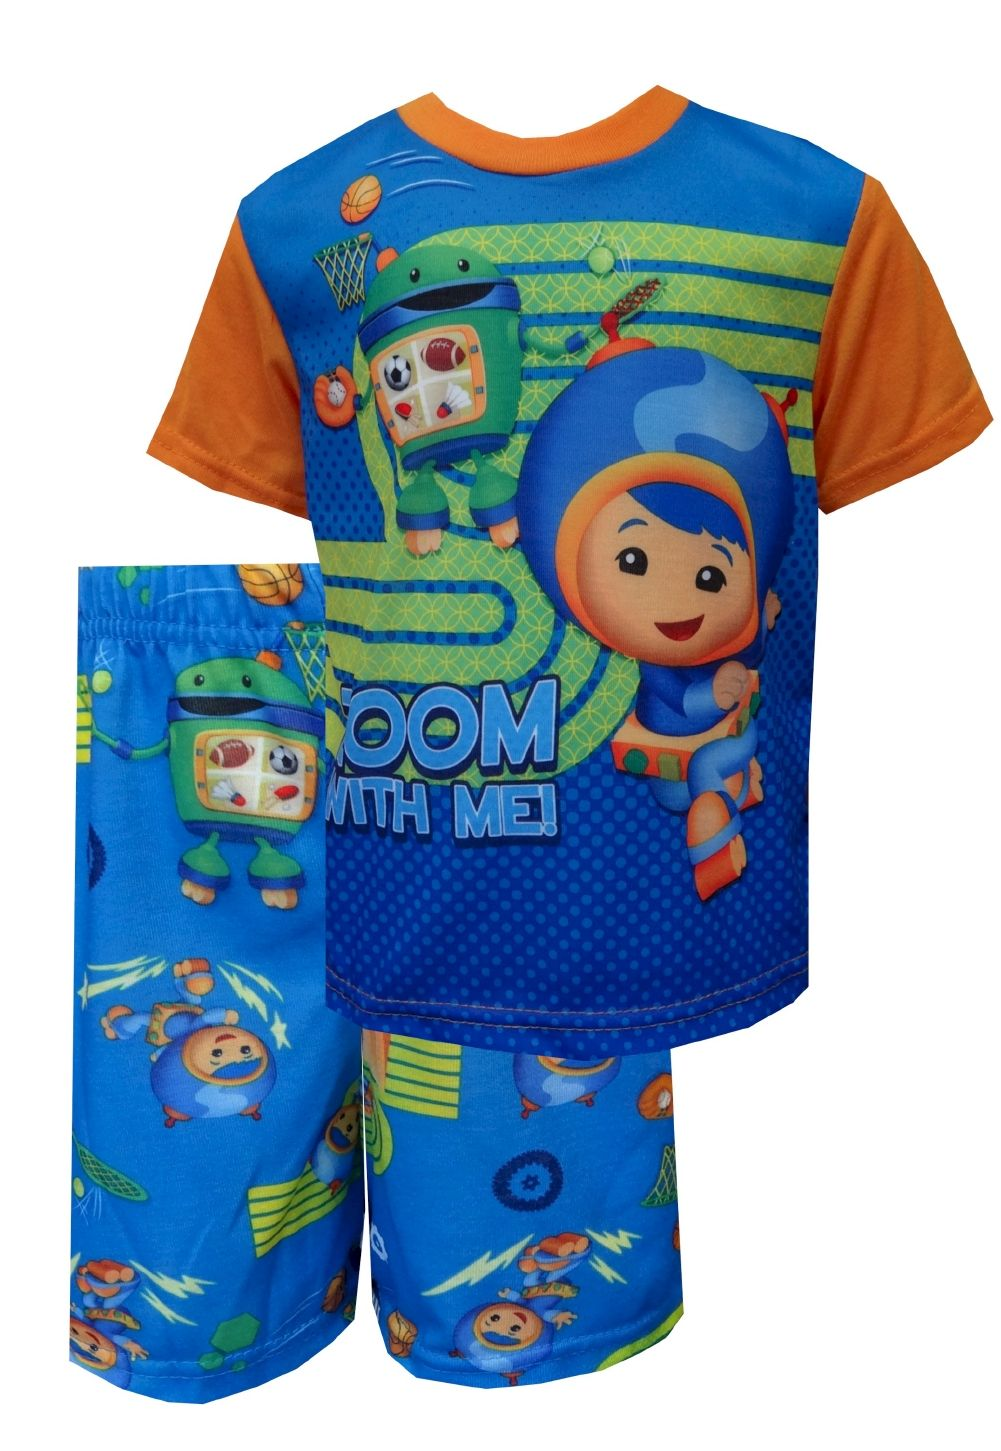 Nickelodeon Team Umizoomi Zoom With Me Toddler Pajamas One, two ...